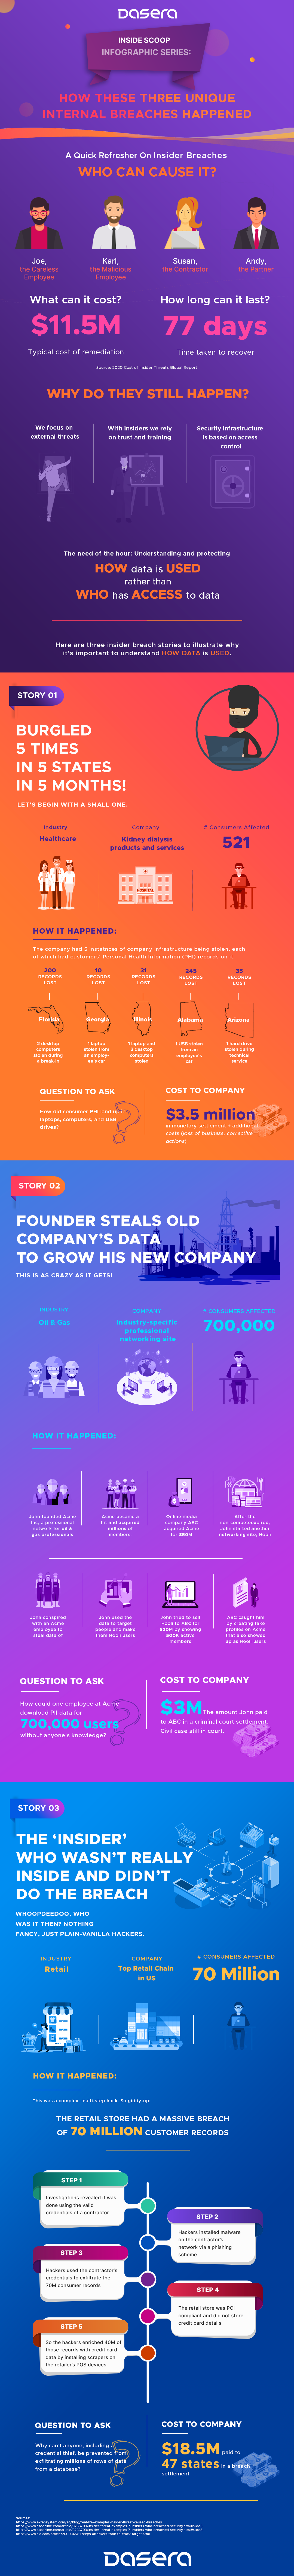 Dasera-insider-breach-stories-inside-scoop-data security infographic 1.png